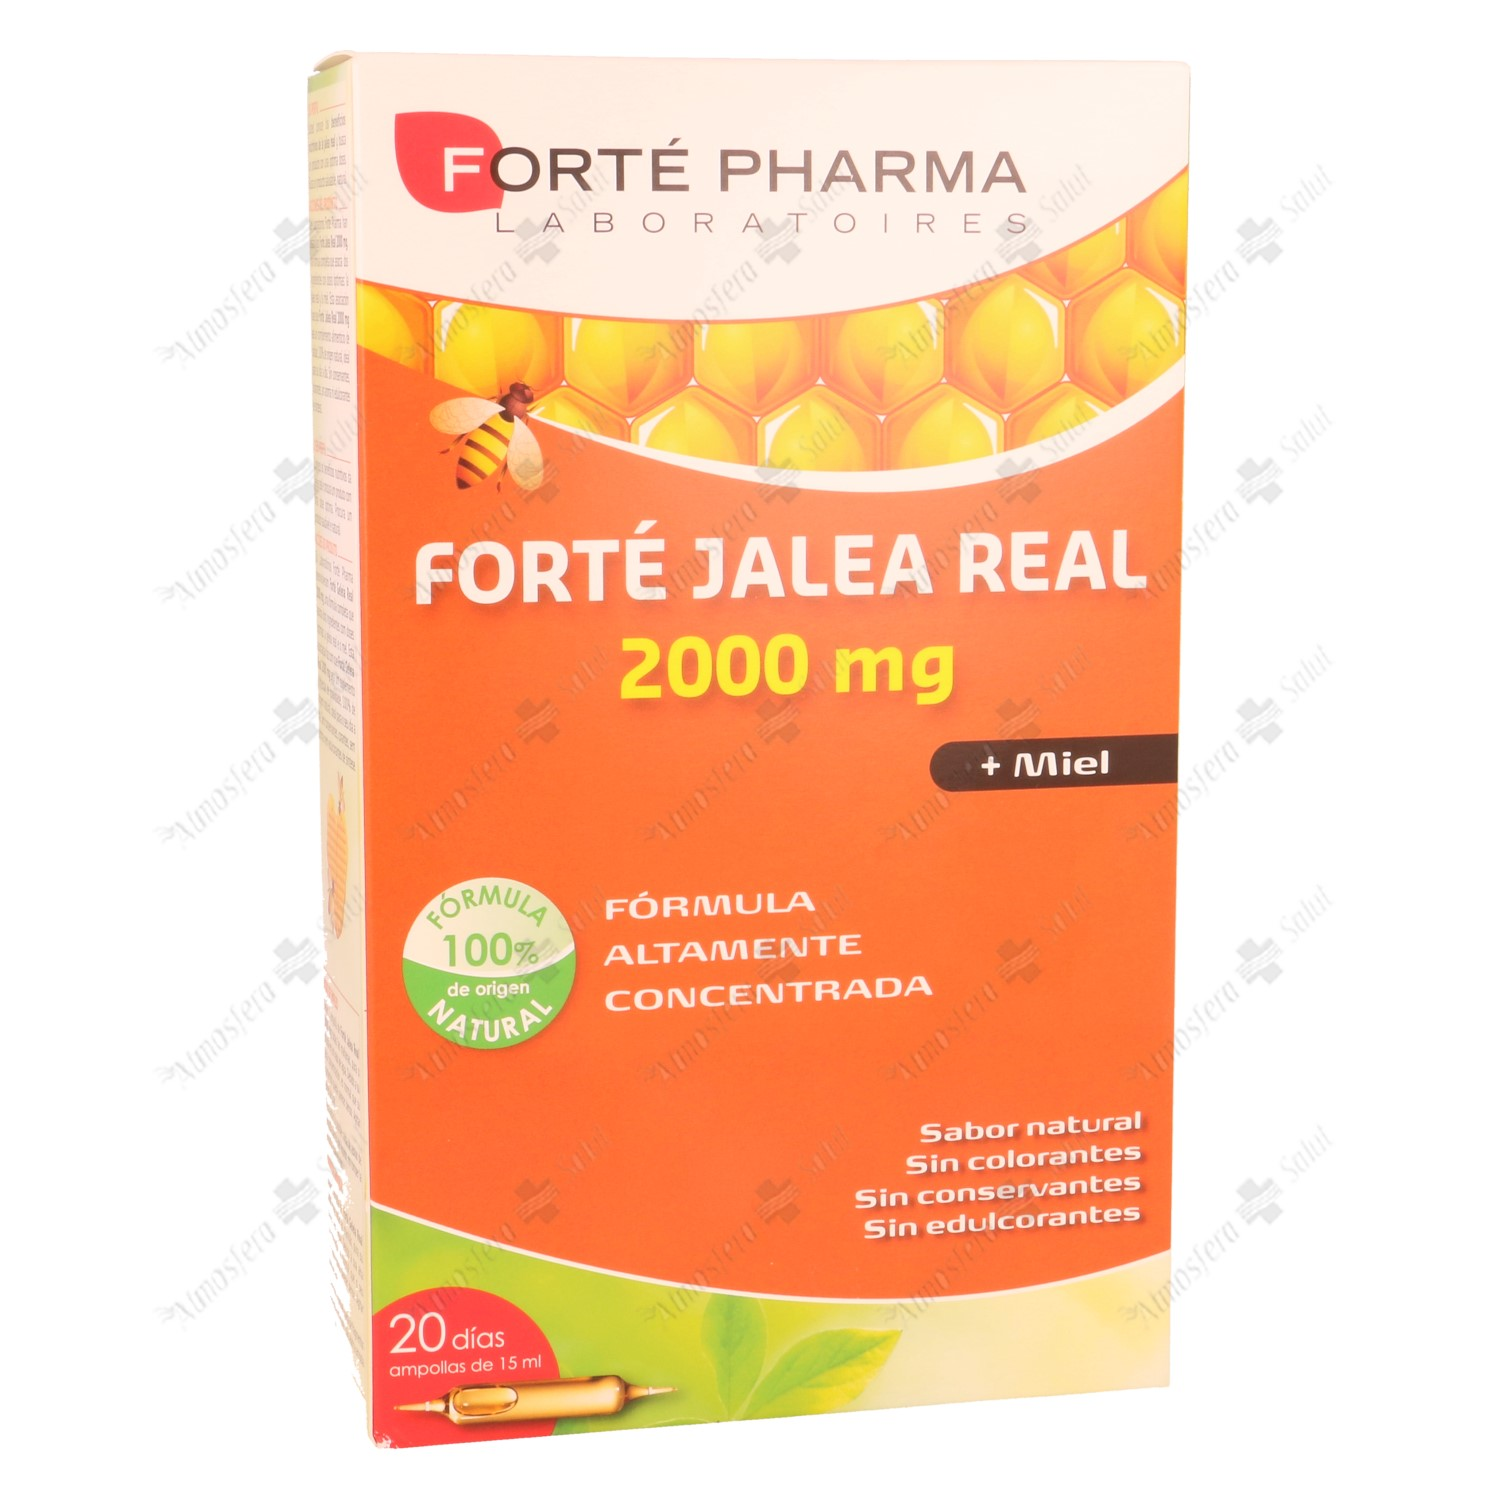 JALEA REAL 2000 MG FORTE PHARMA 20 AMPOLLAS